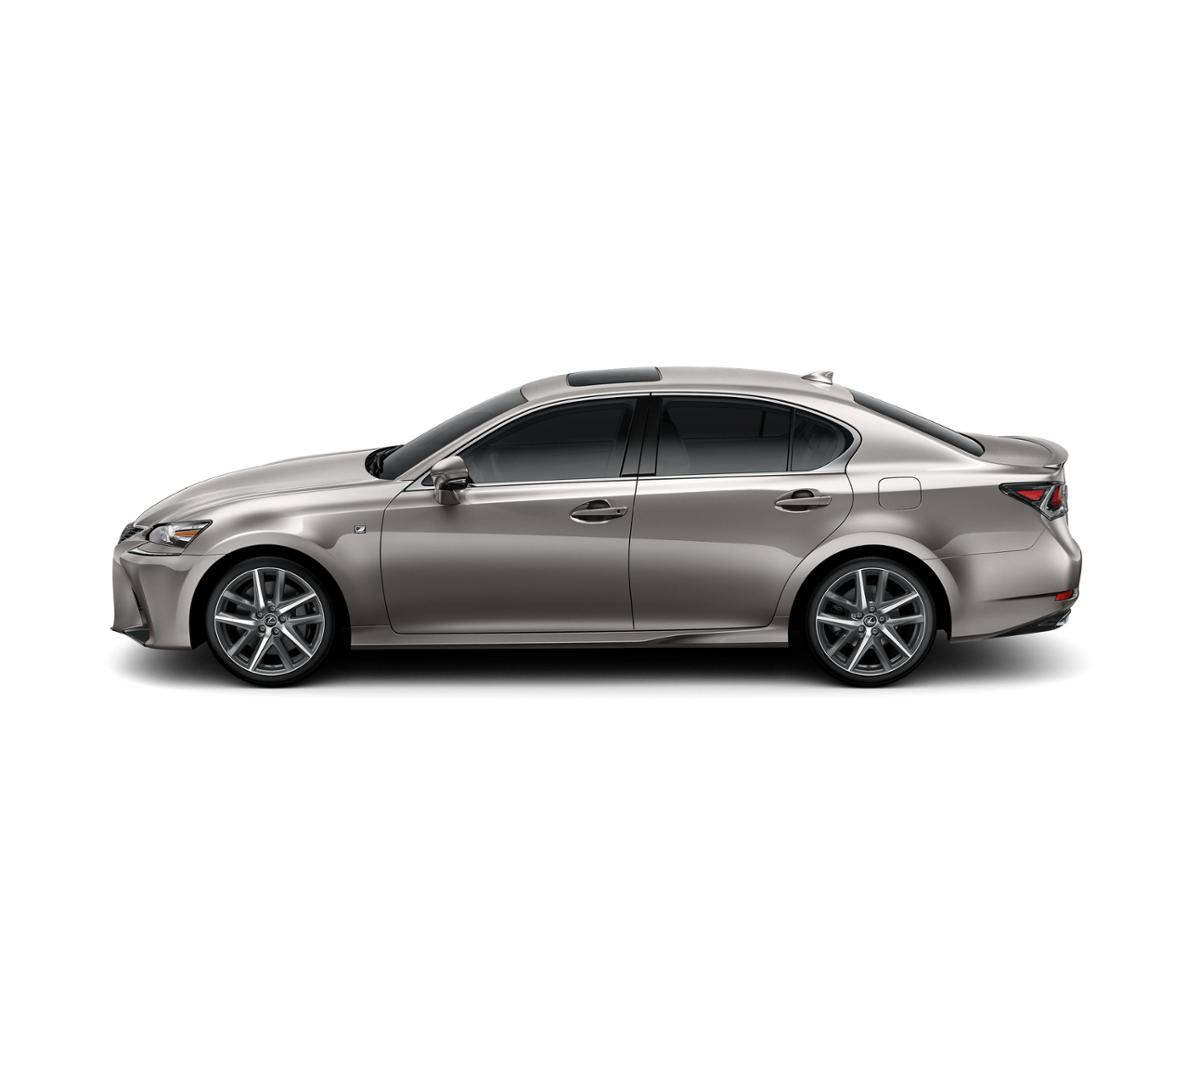 New Atomic Silver 2019 Lexus GS 350 F SPORT For Sale